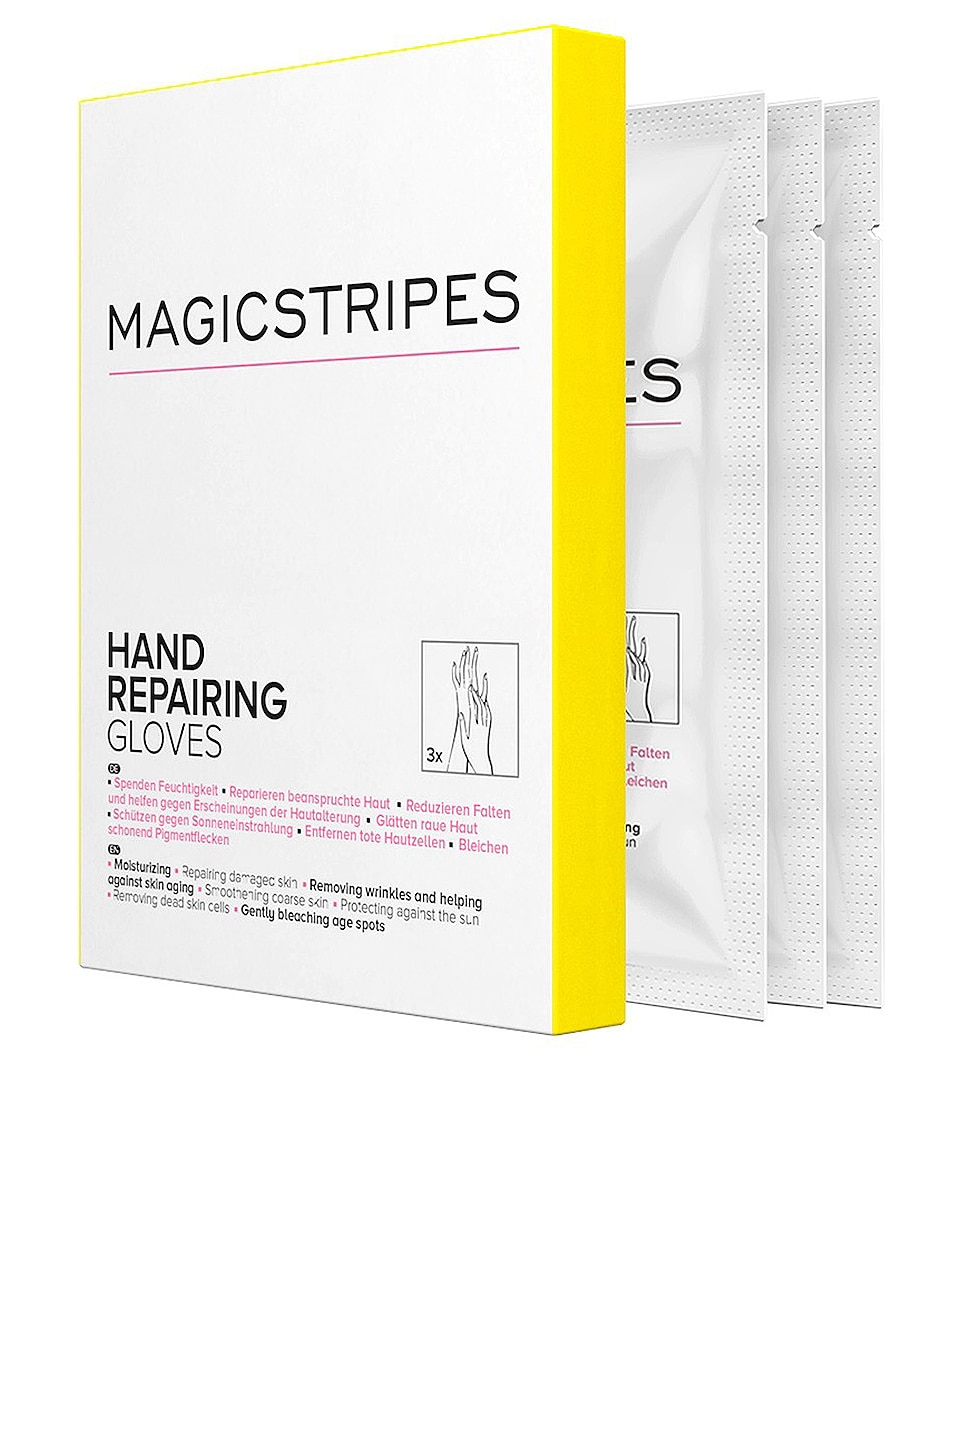 MAGICSTRIPES Hand Repairing Gloves Box 3 Pack